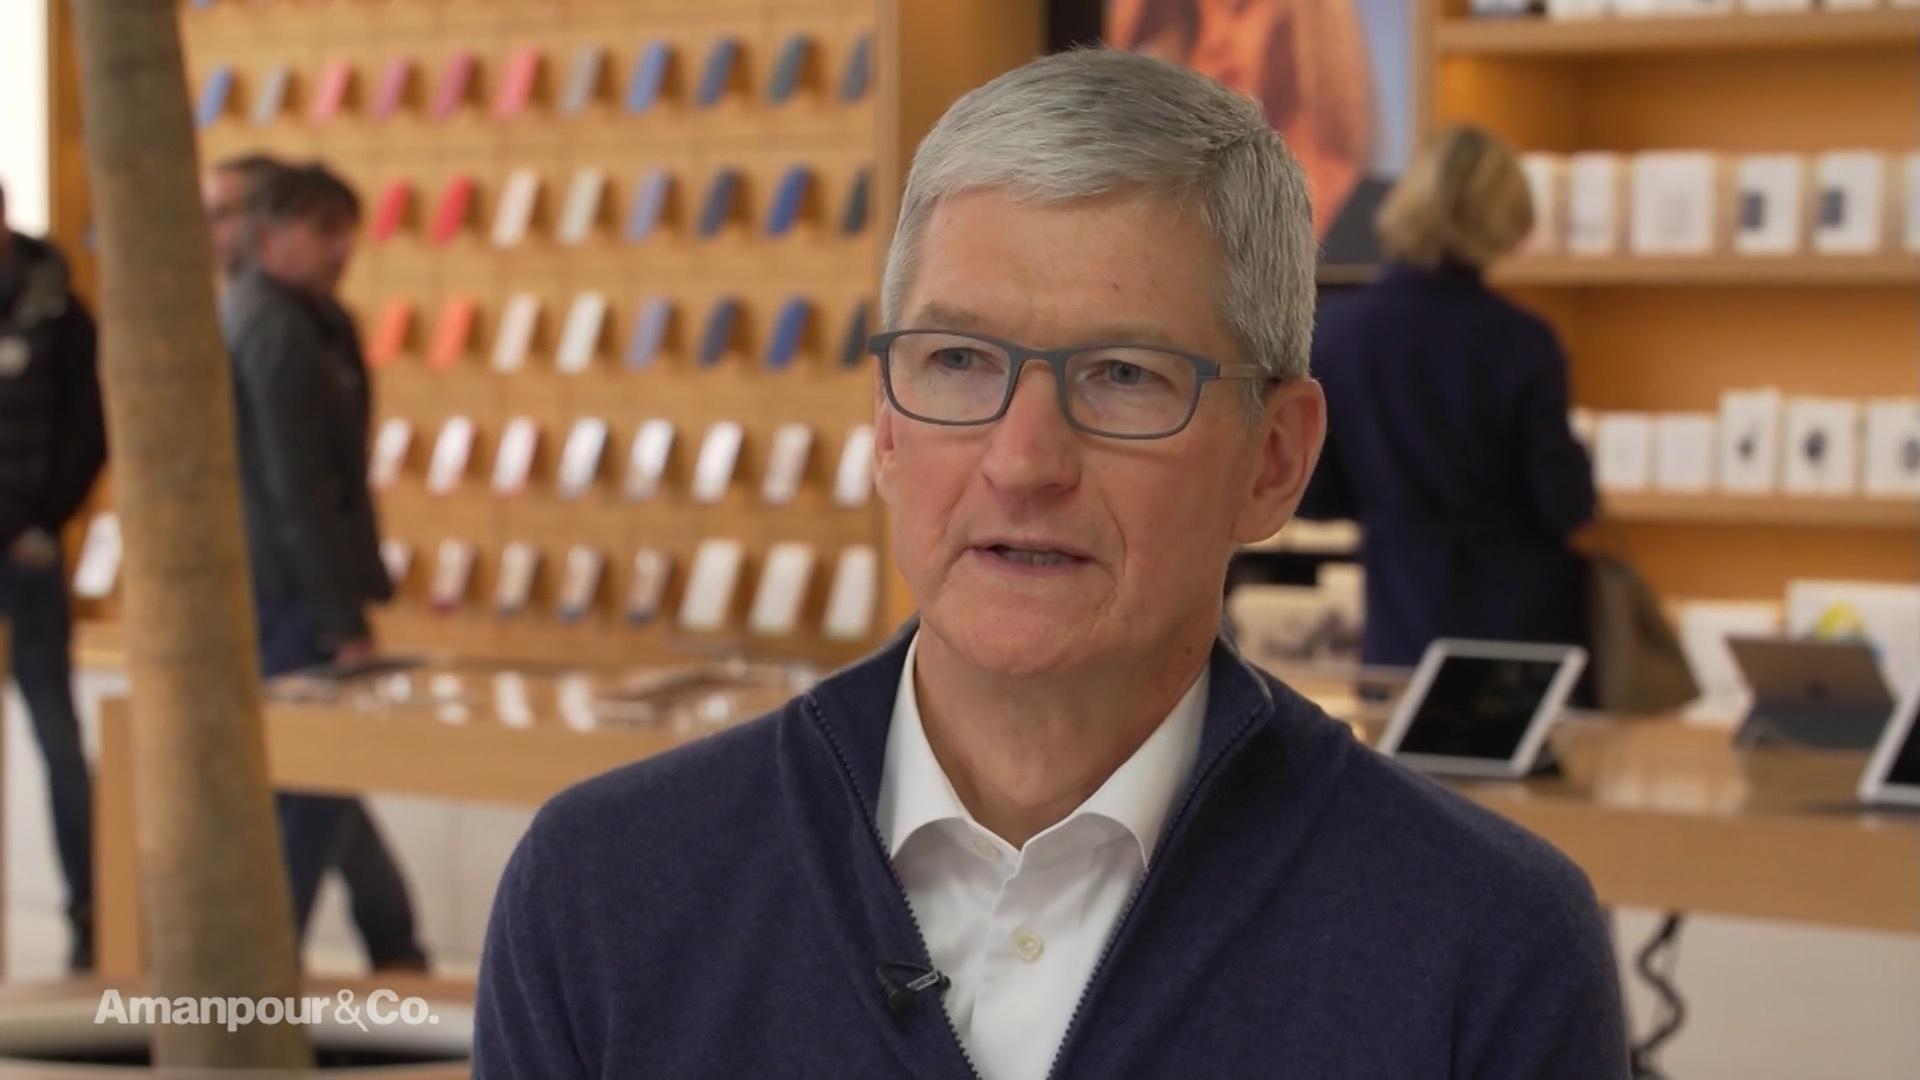 Tim Cook Explains Why Privacy Is at a Crisis Point